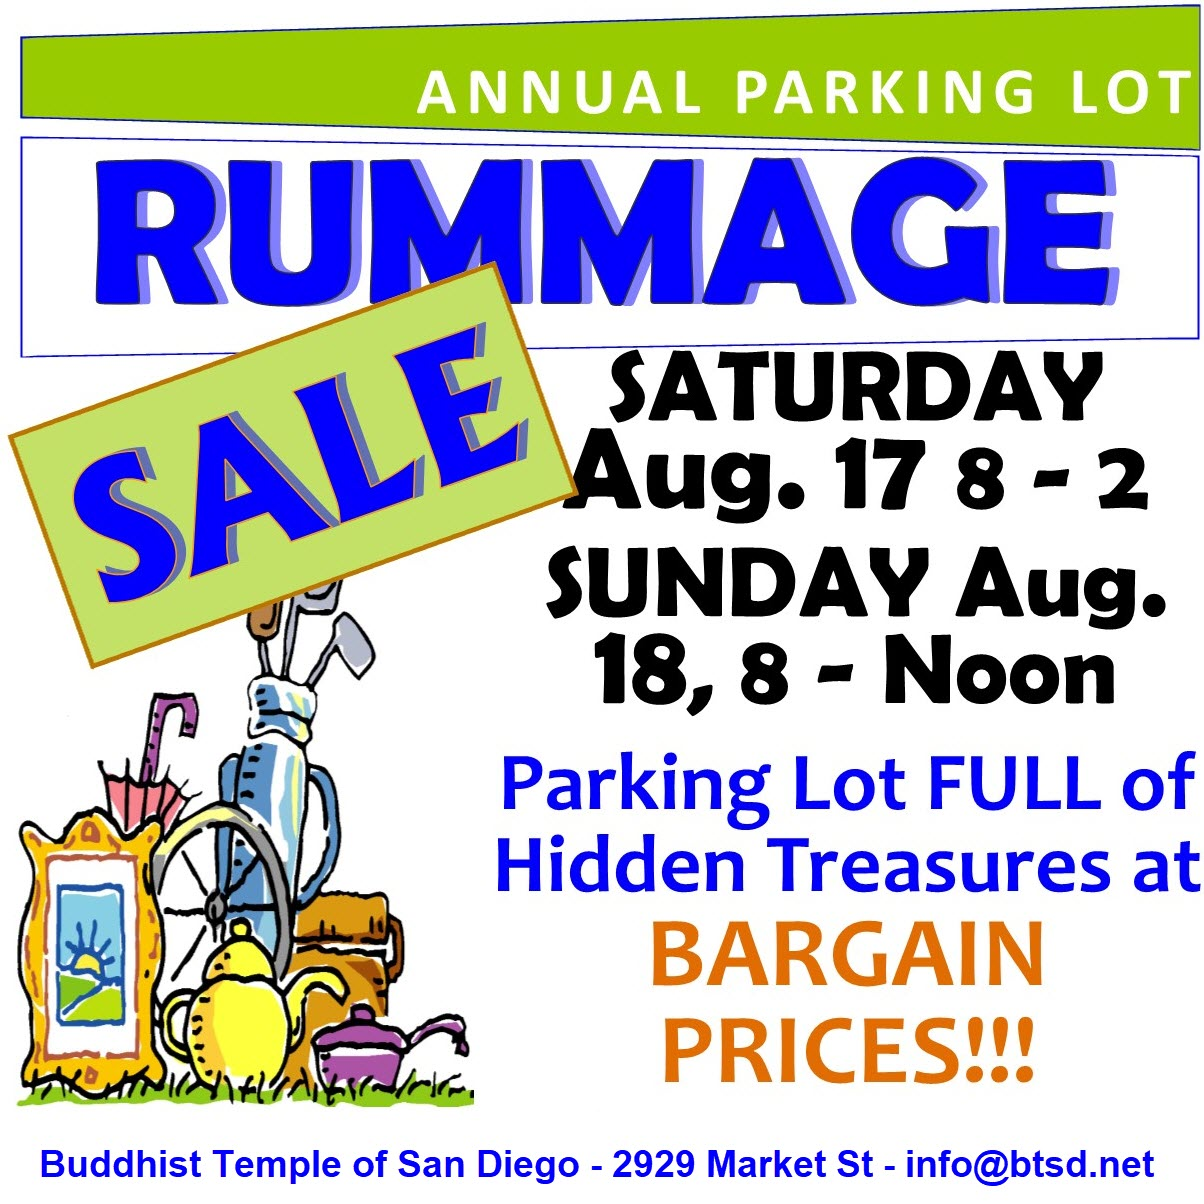 Save the Date for Bargains - 2019 RUMMAGE SALE! — Buddhist